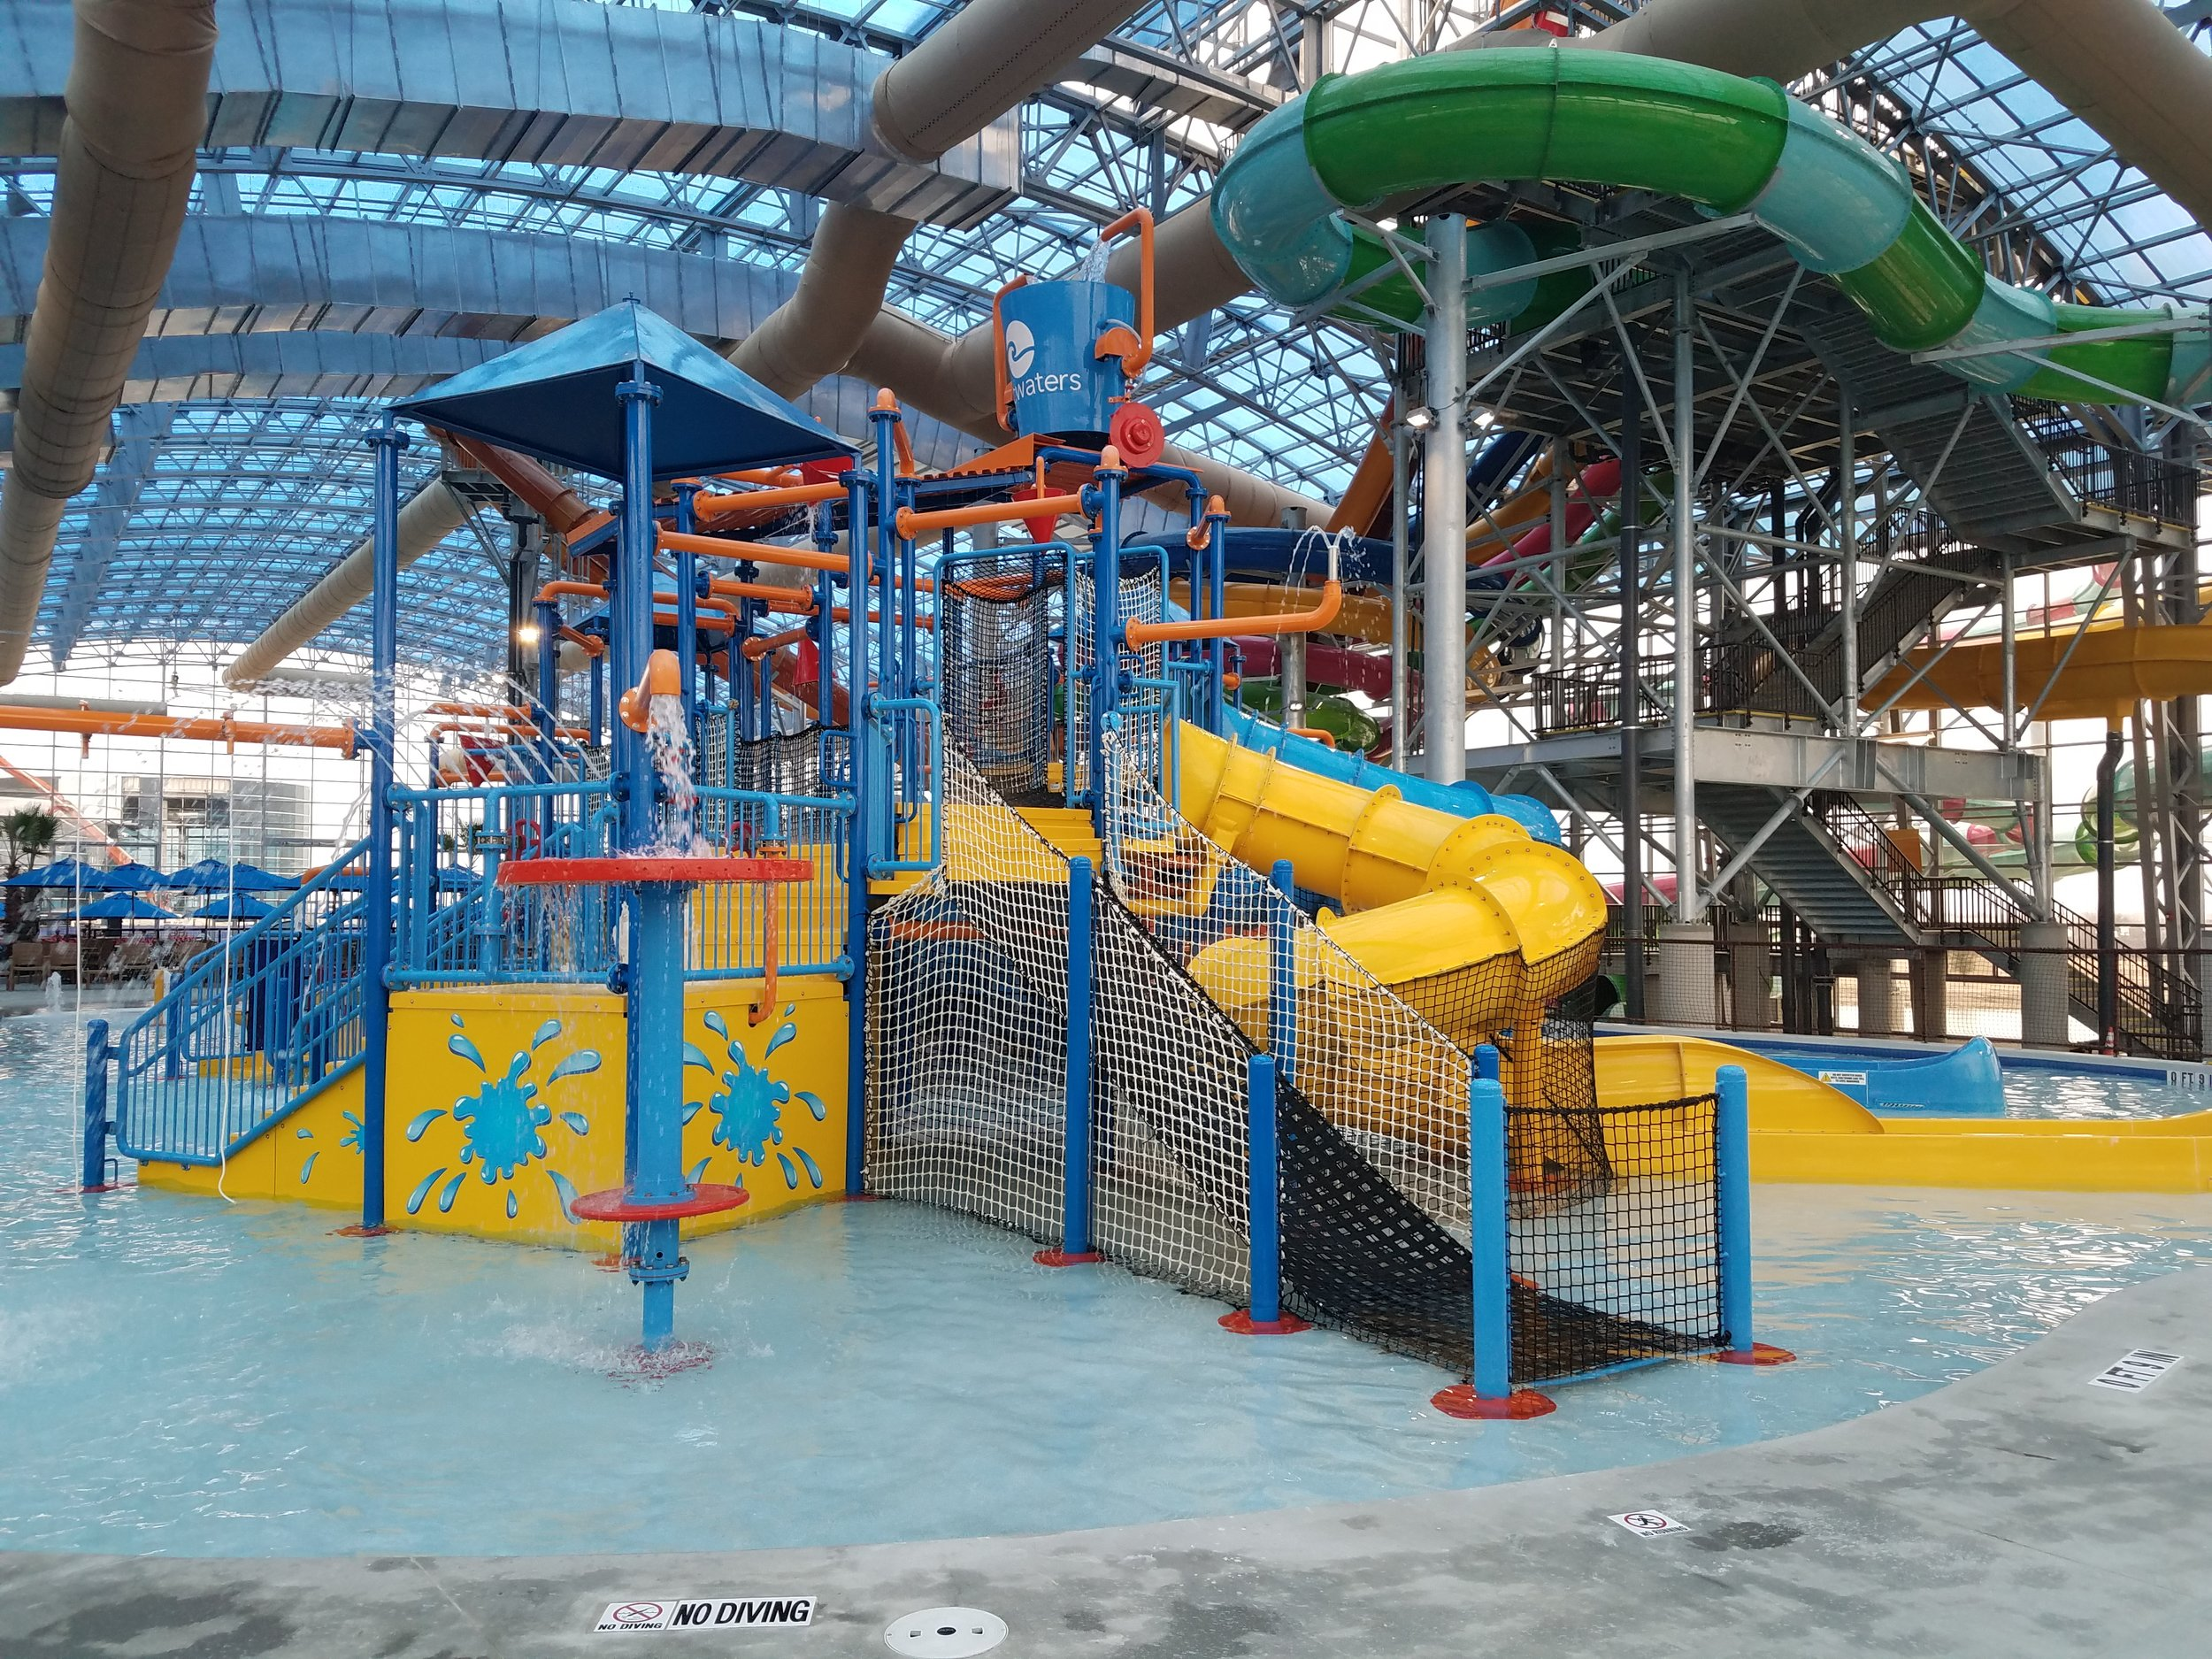 Water play area at EPIC Waters